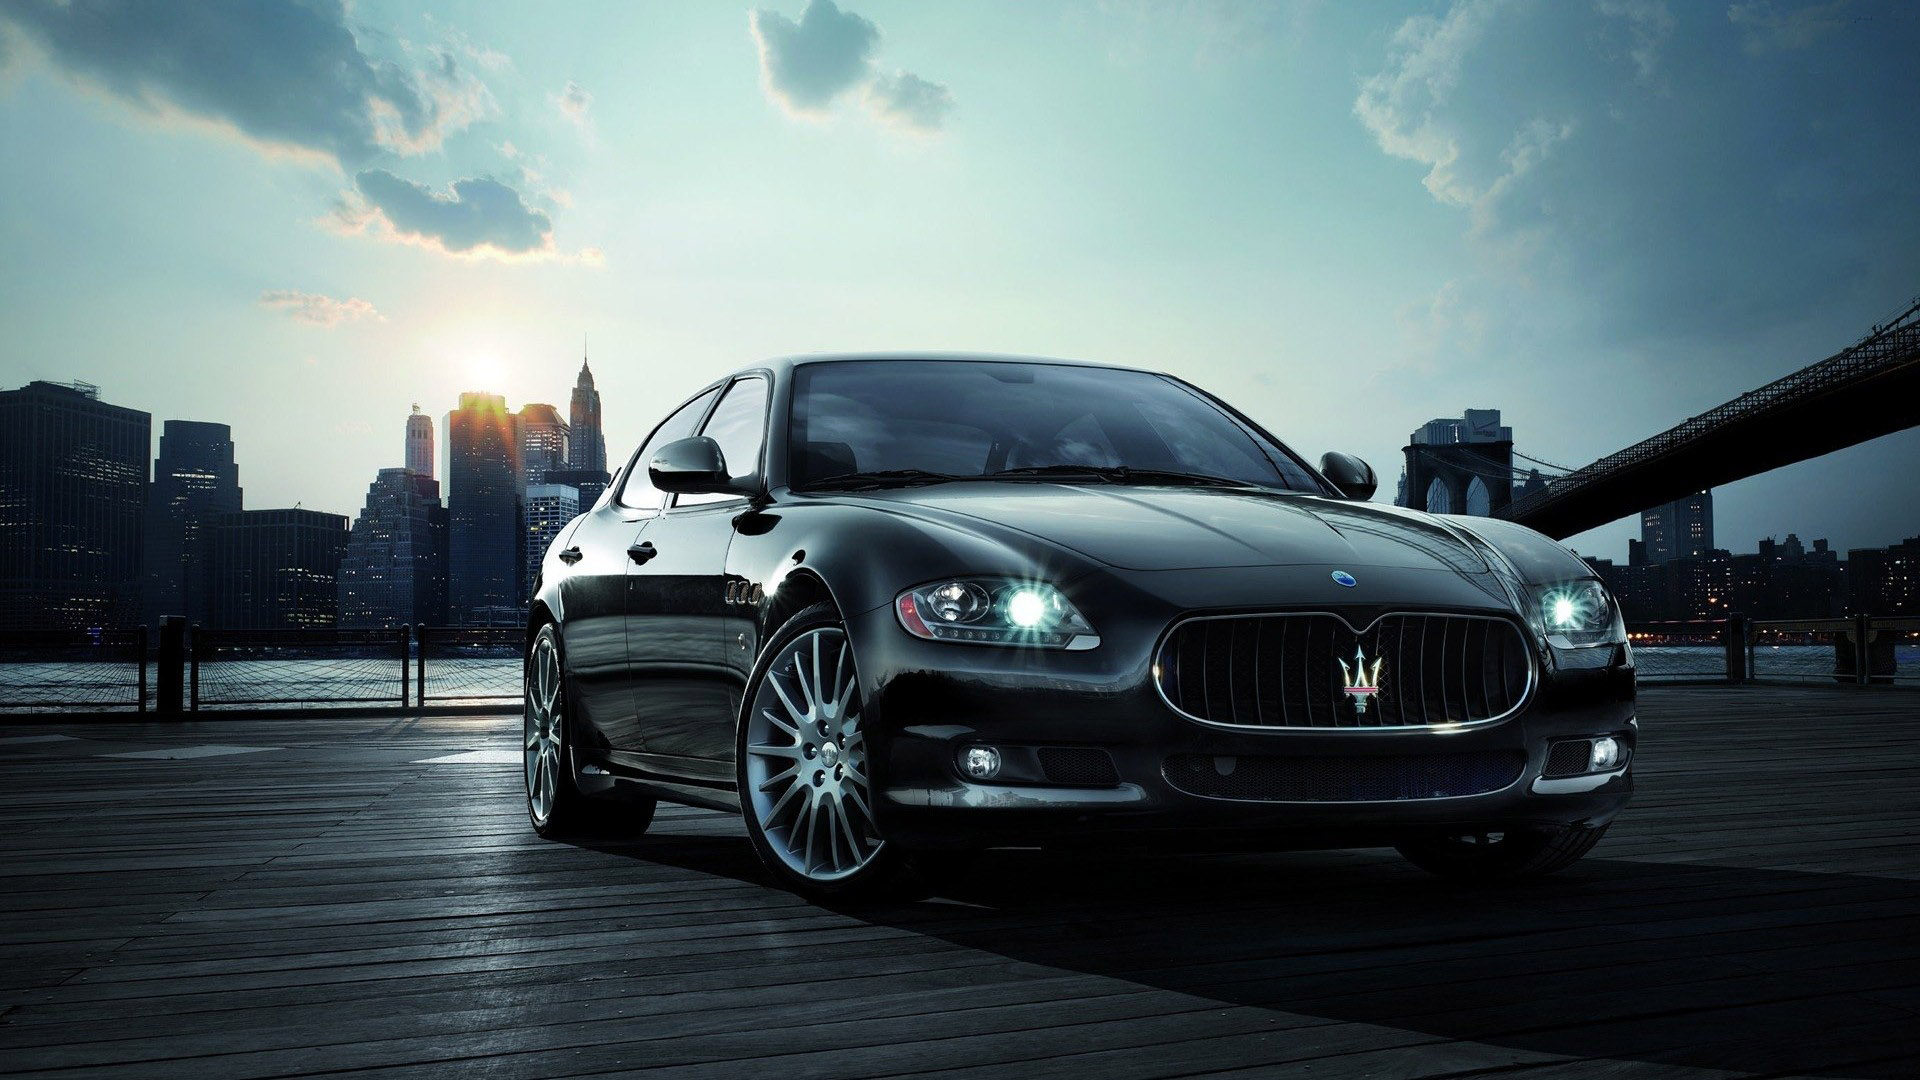 Car wallpaper Maserati Quattroporte Car Humor 1920x1080